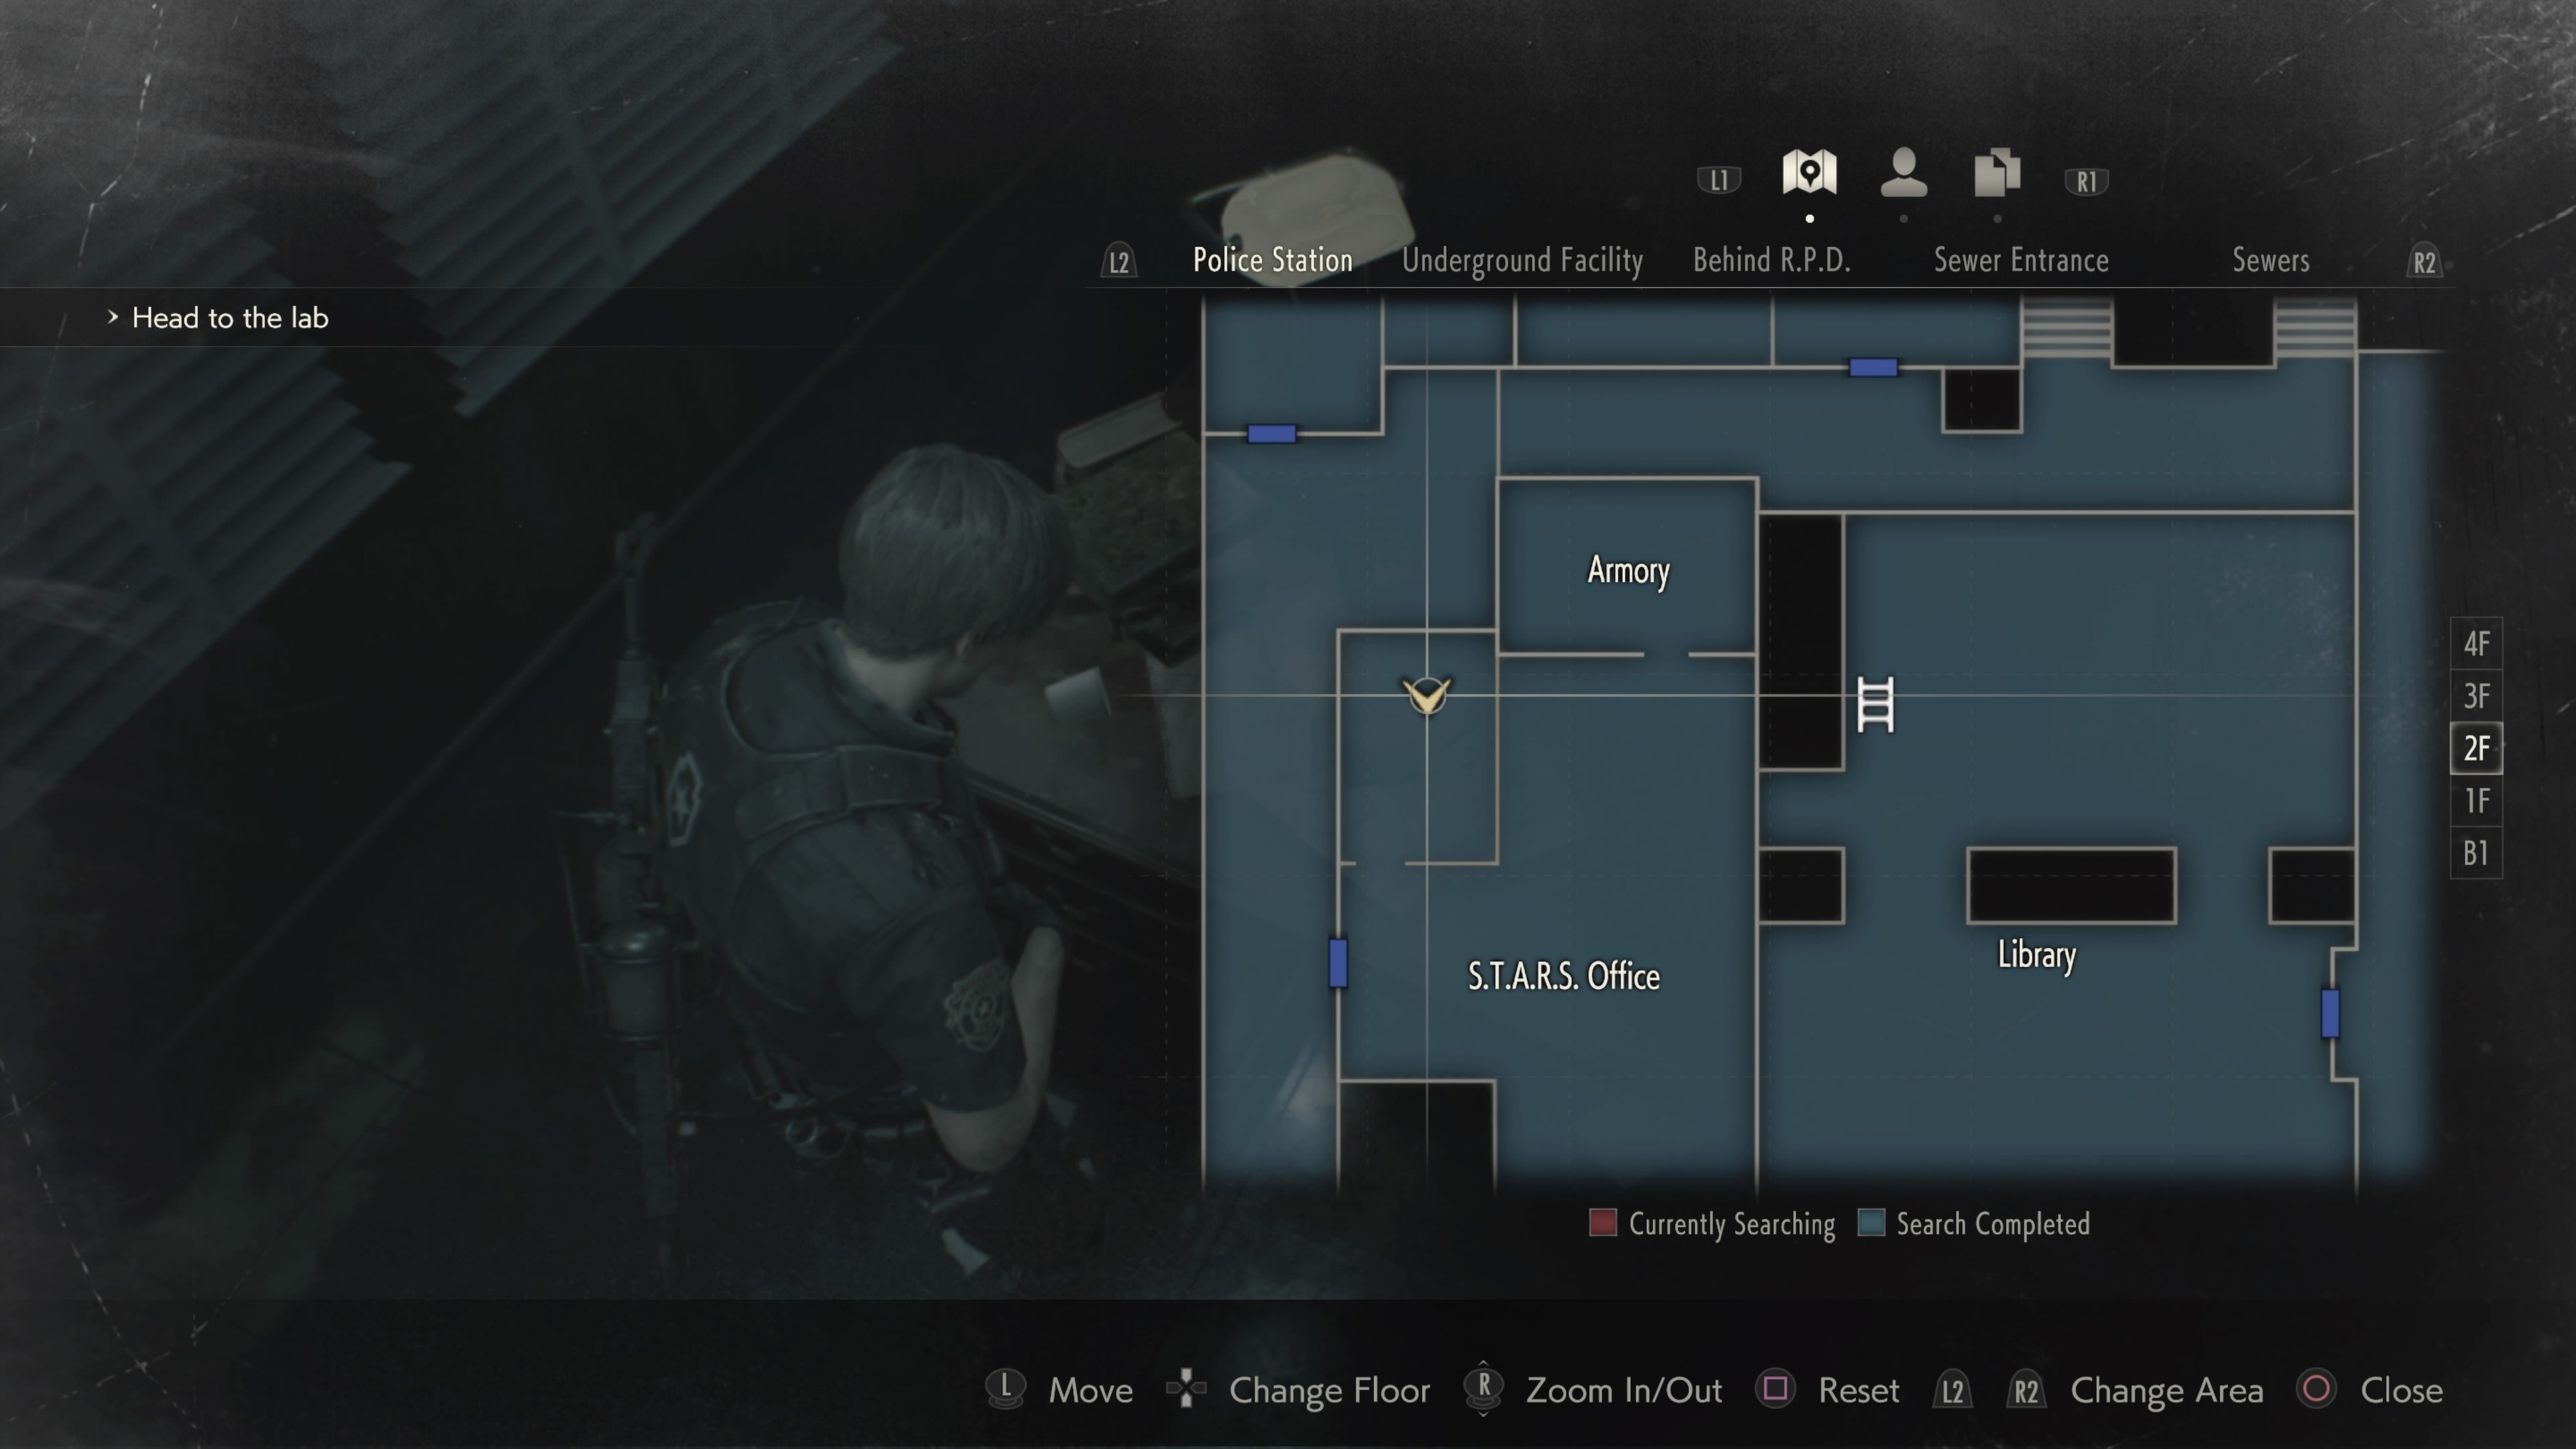 Where to search Hiding Place Resident Evil 2